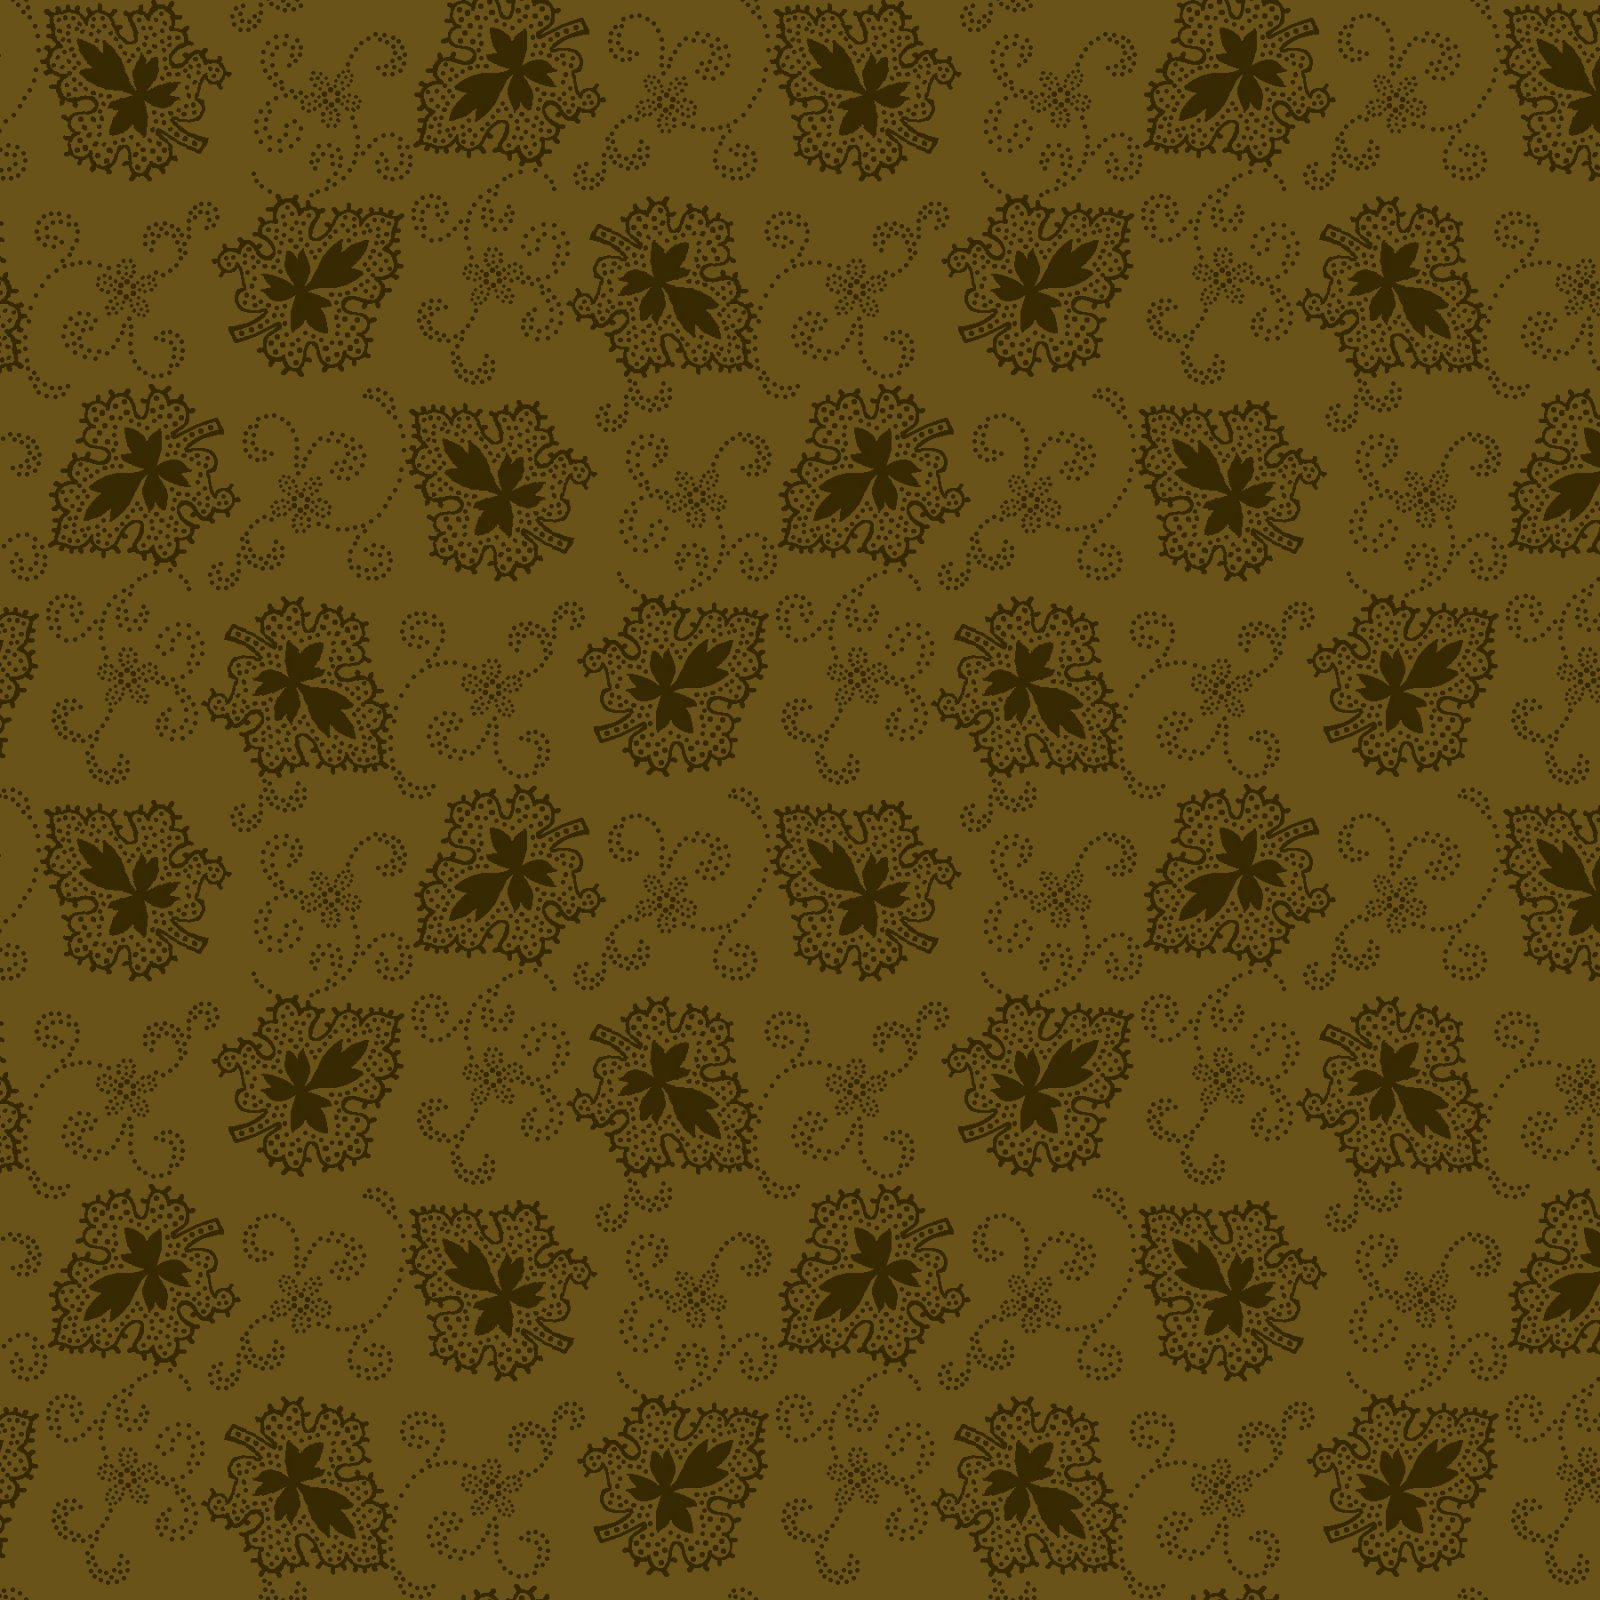 Buttermilk Autumn - 2275-66 * 1/2 yard